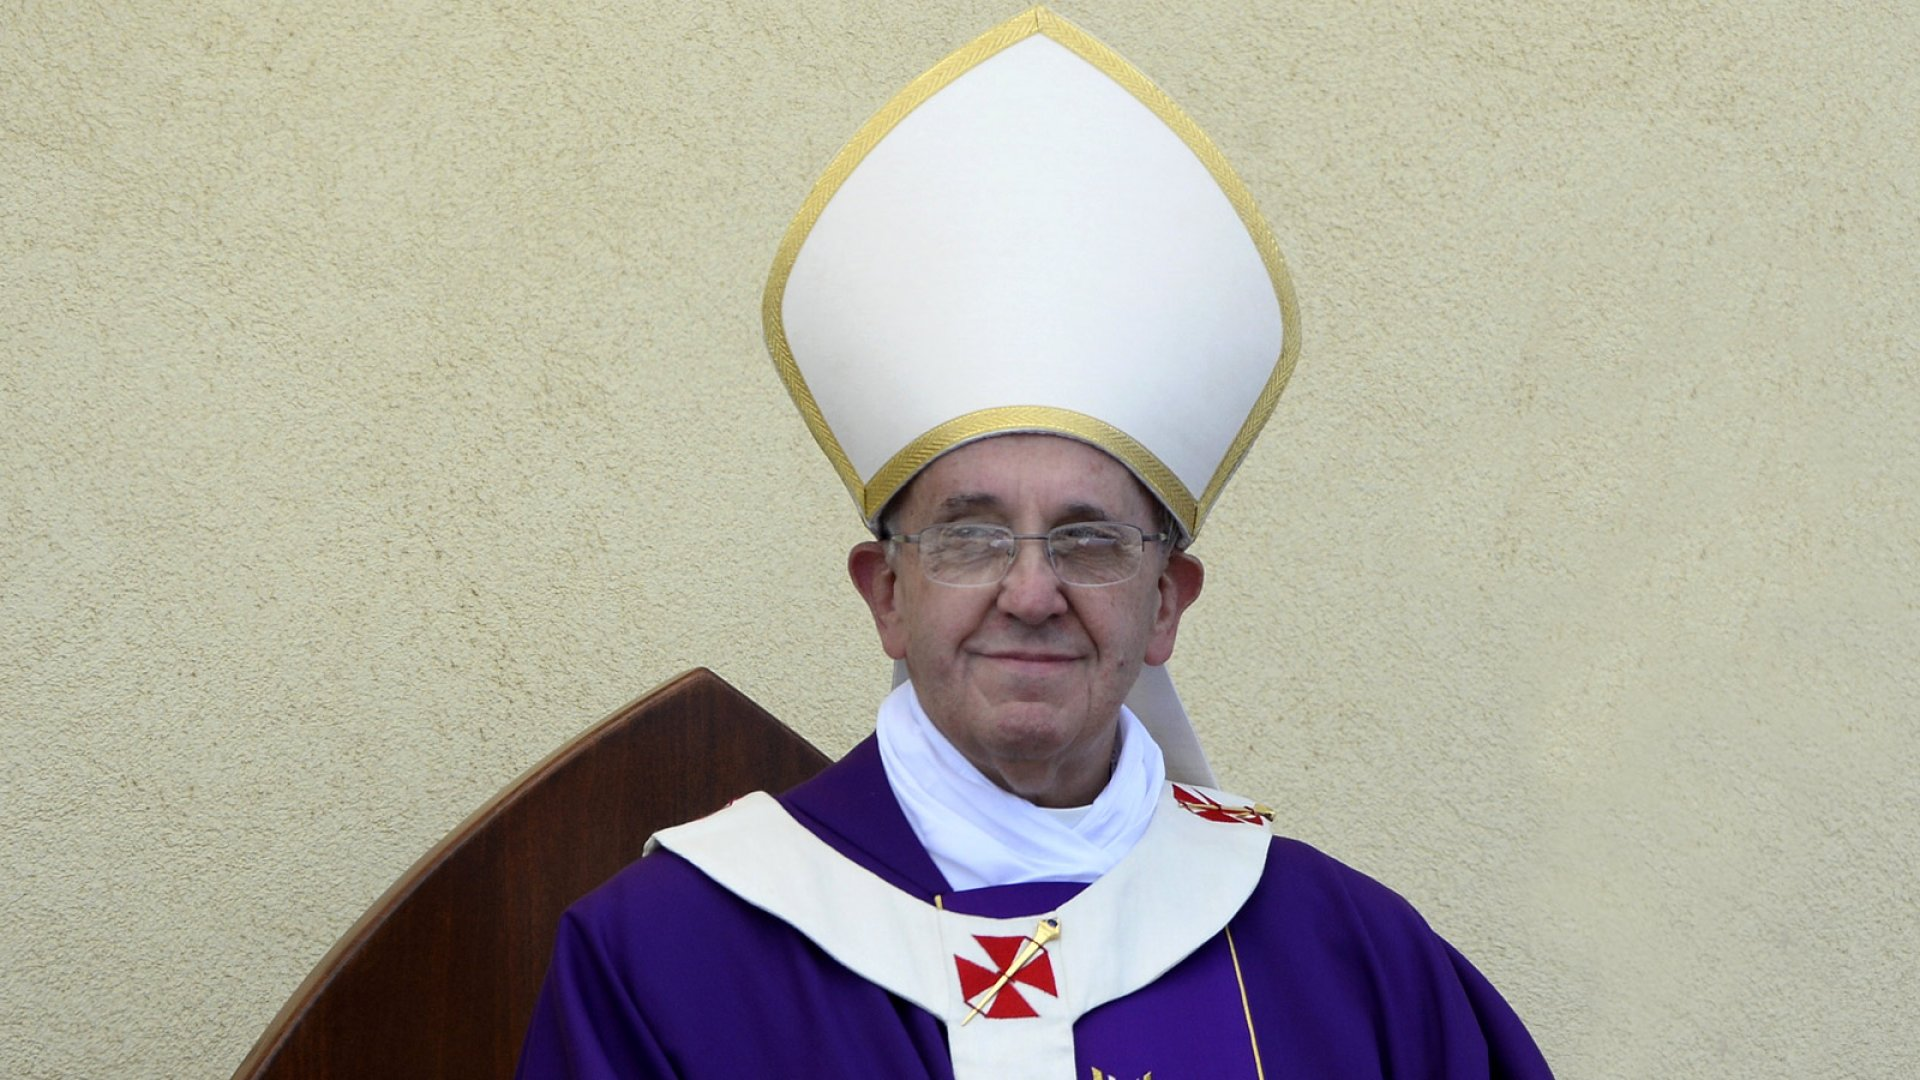 4 Reasons the Pope Is Wrong on Capitalism